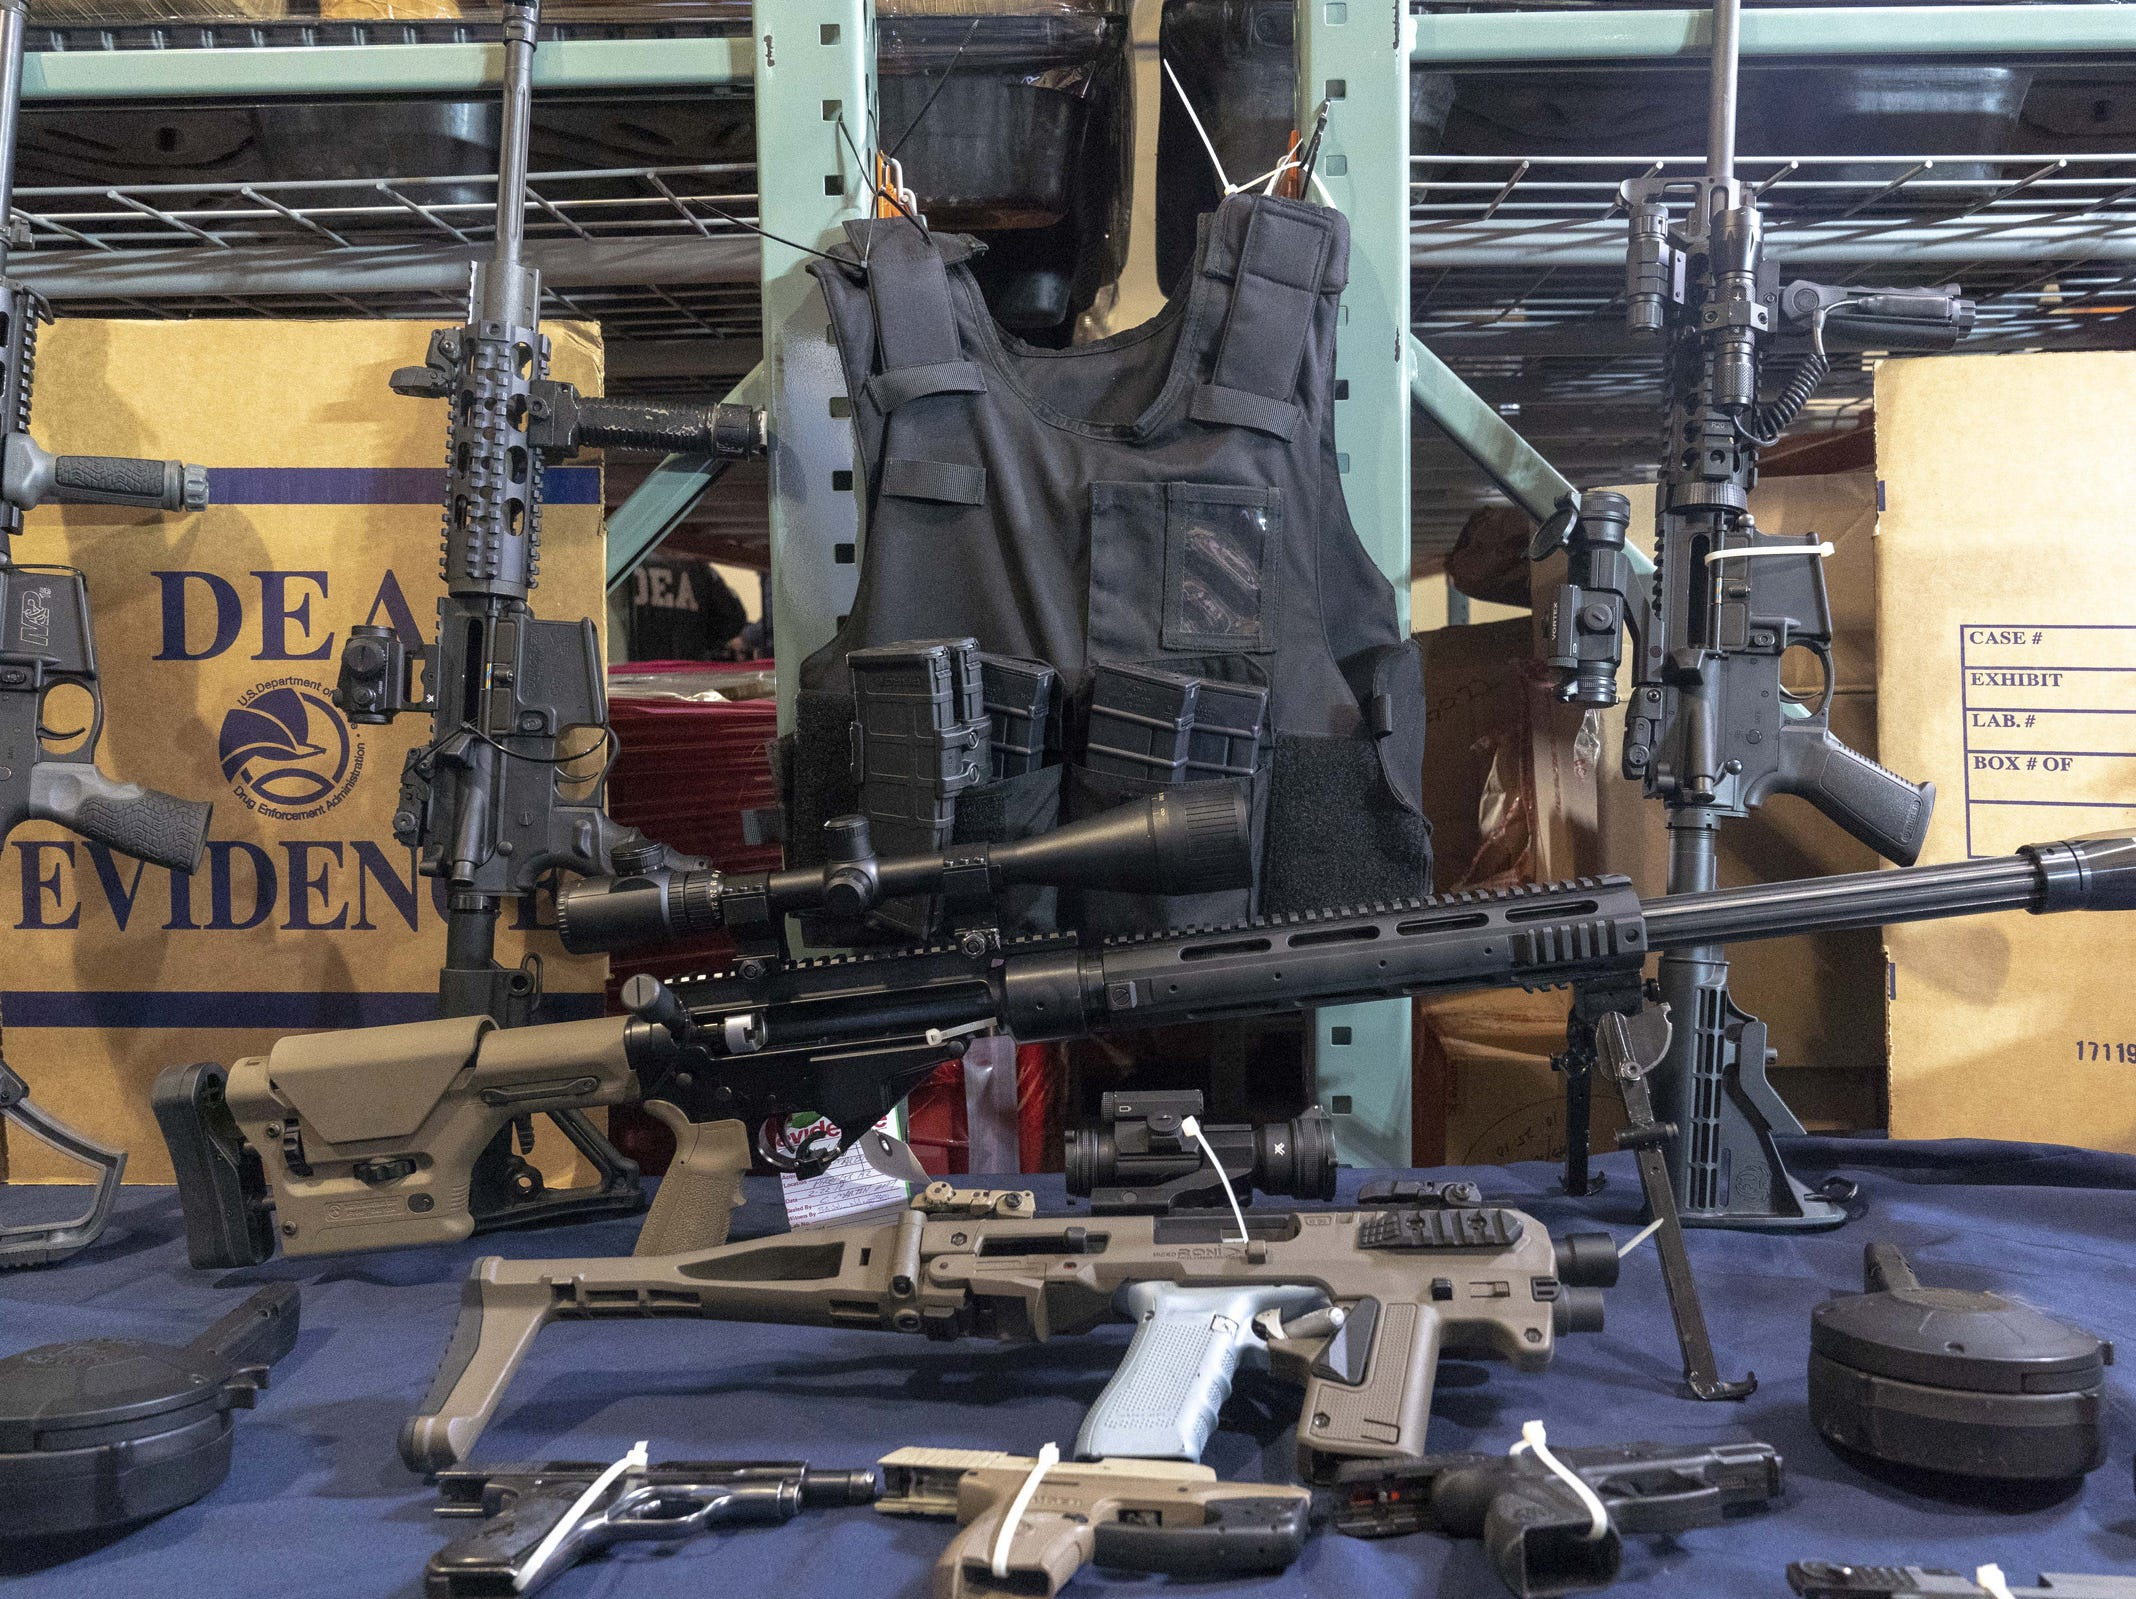 DEA agents show stored weapons at a facility in the Phoenix area on March 5, 2019.